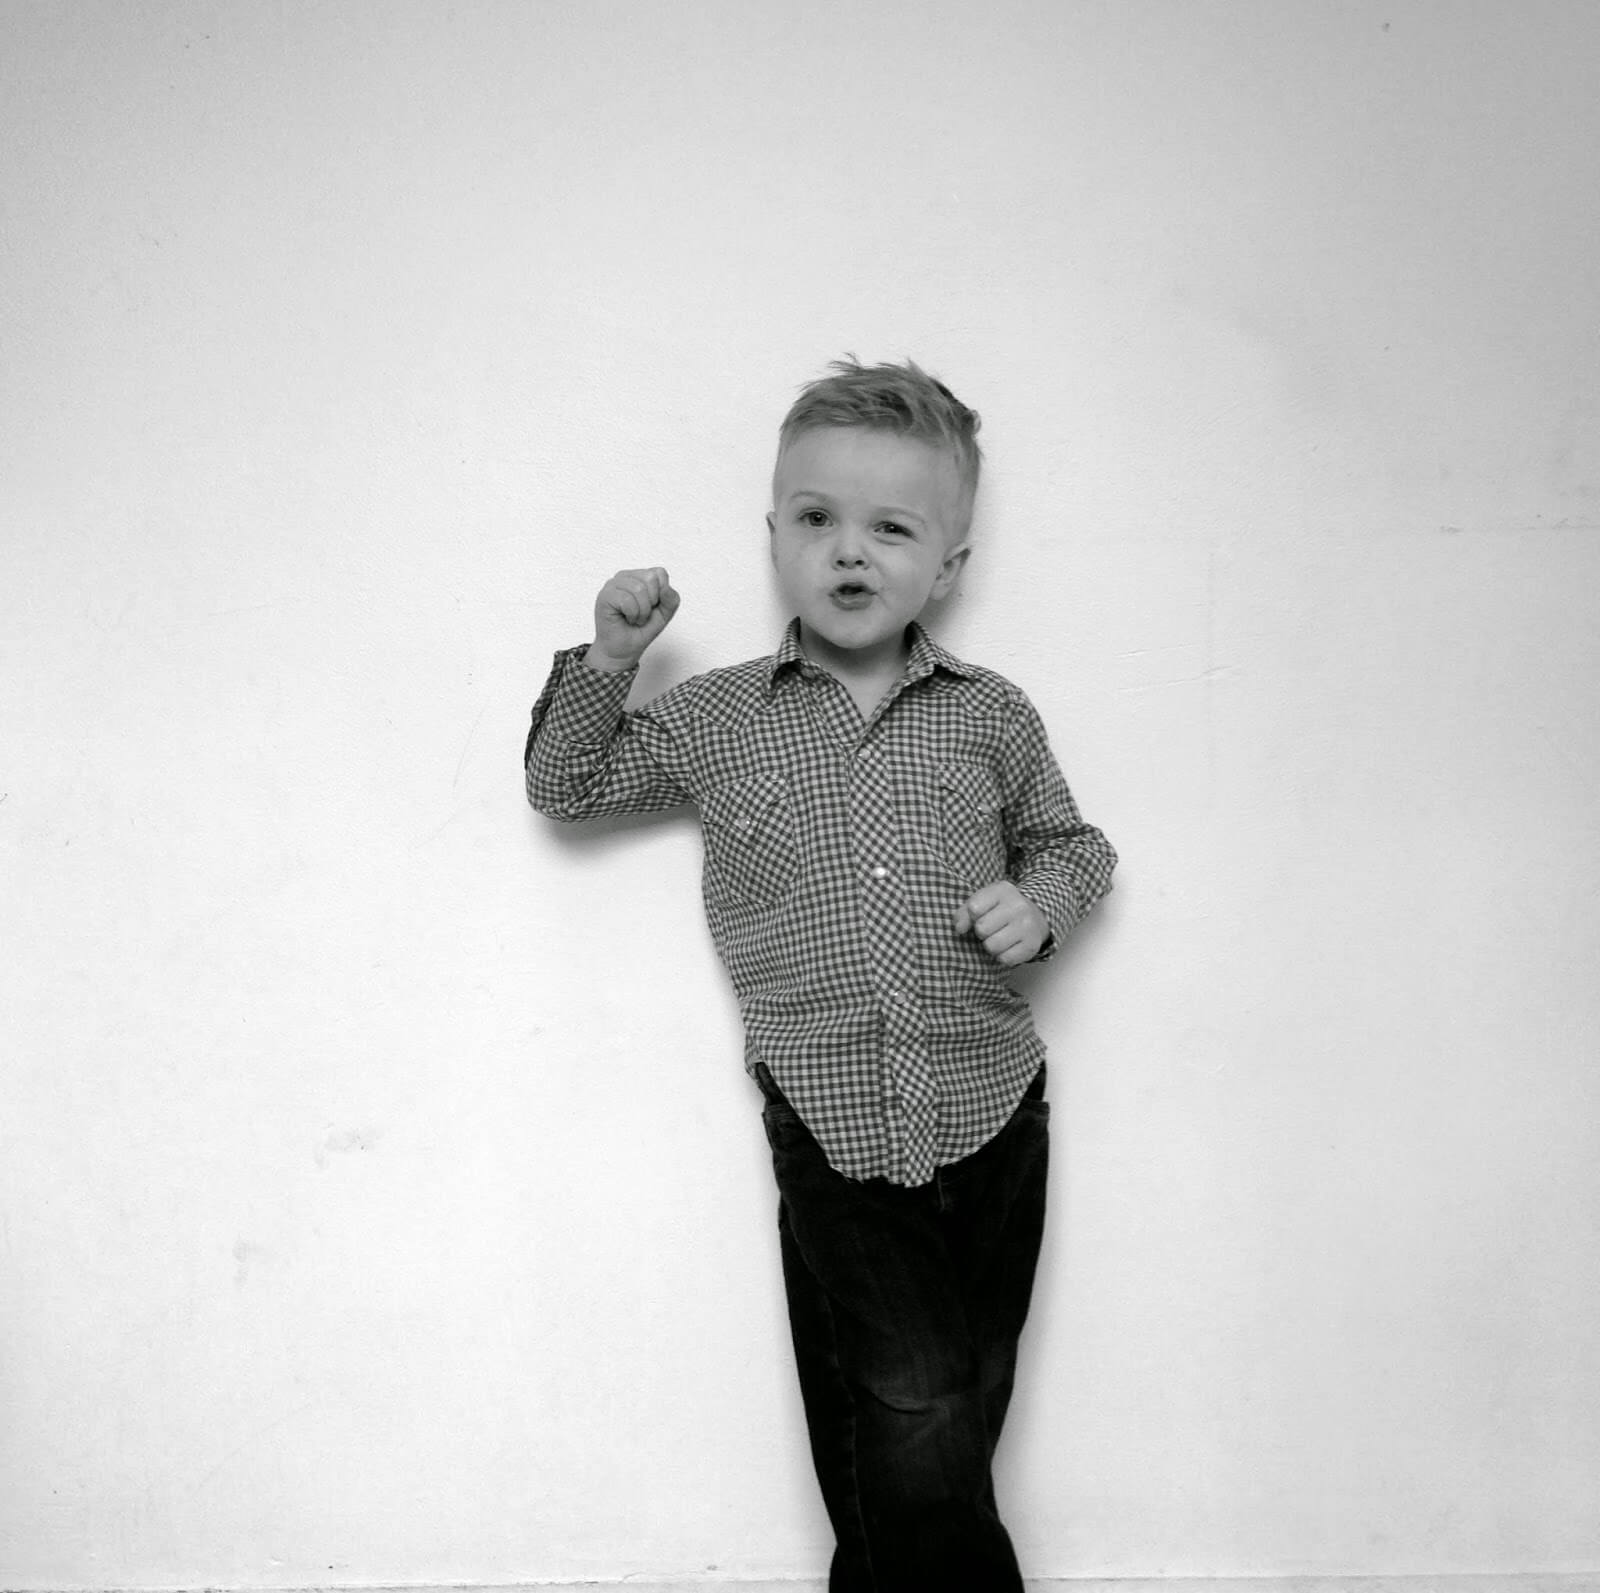 funny pose from little boy